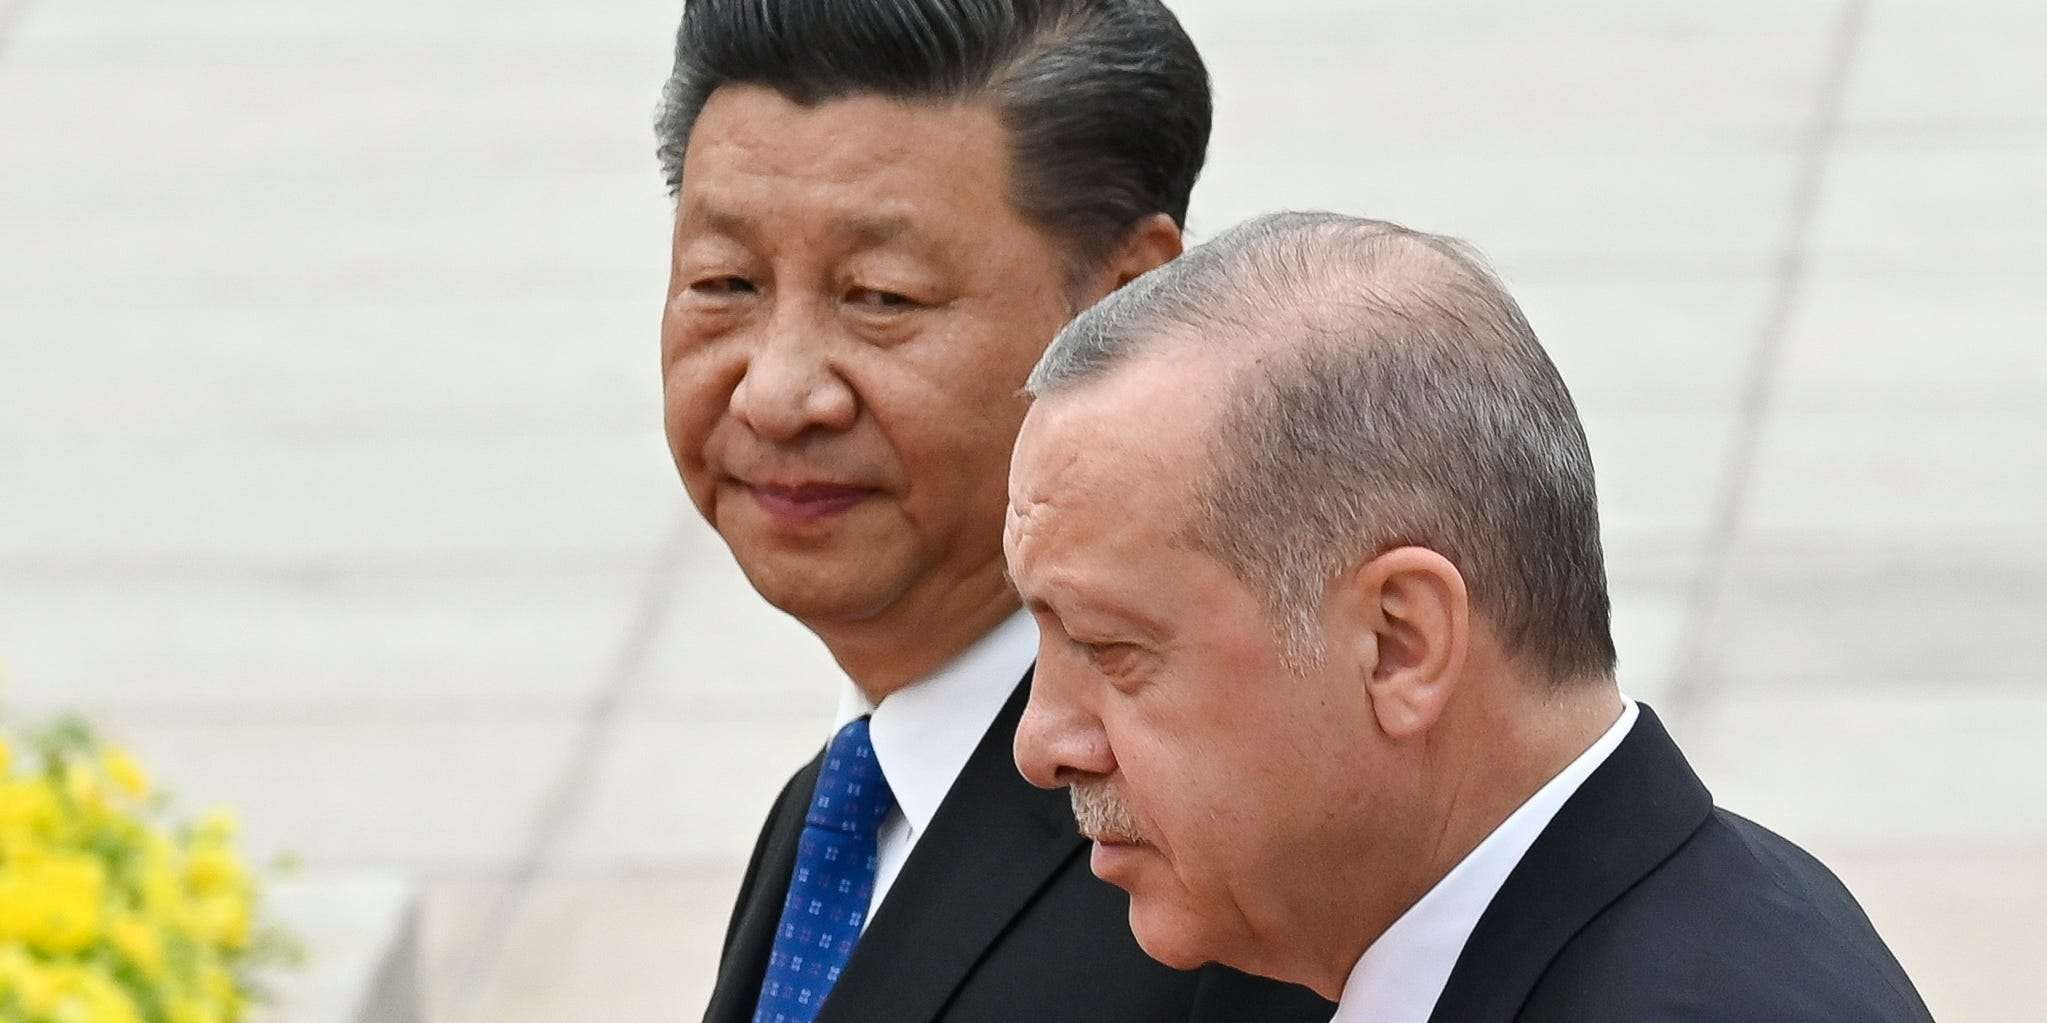 r/worldnews - Turkey is accused of extraditing Uighur Muslims to China in exchange for COVID-19 vaccines